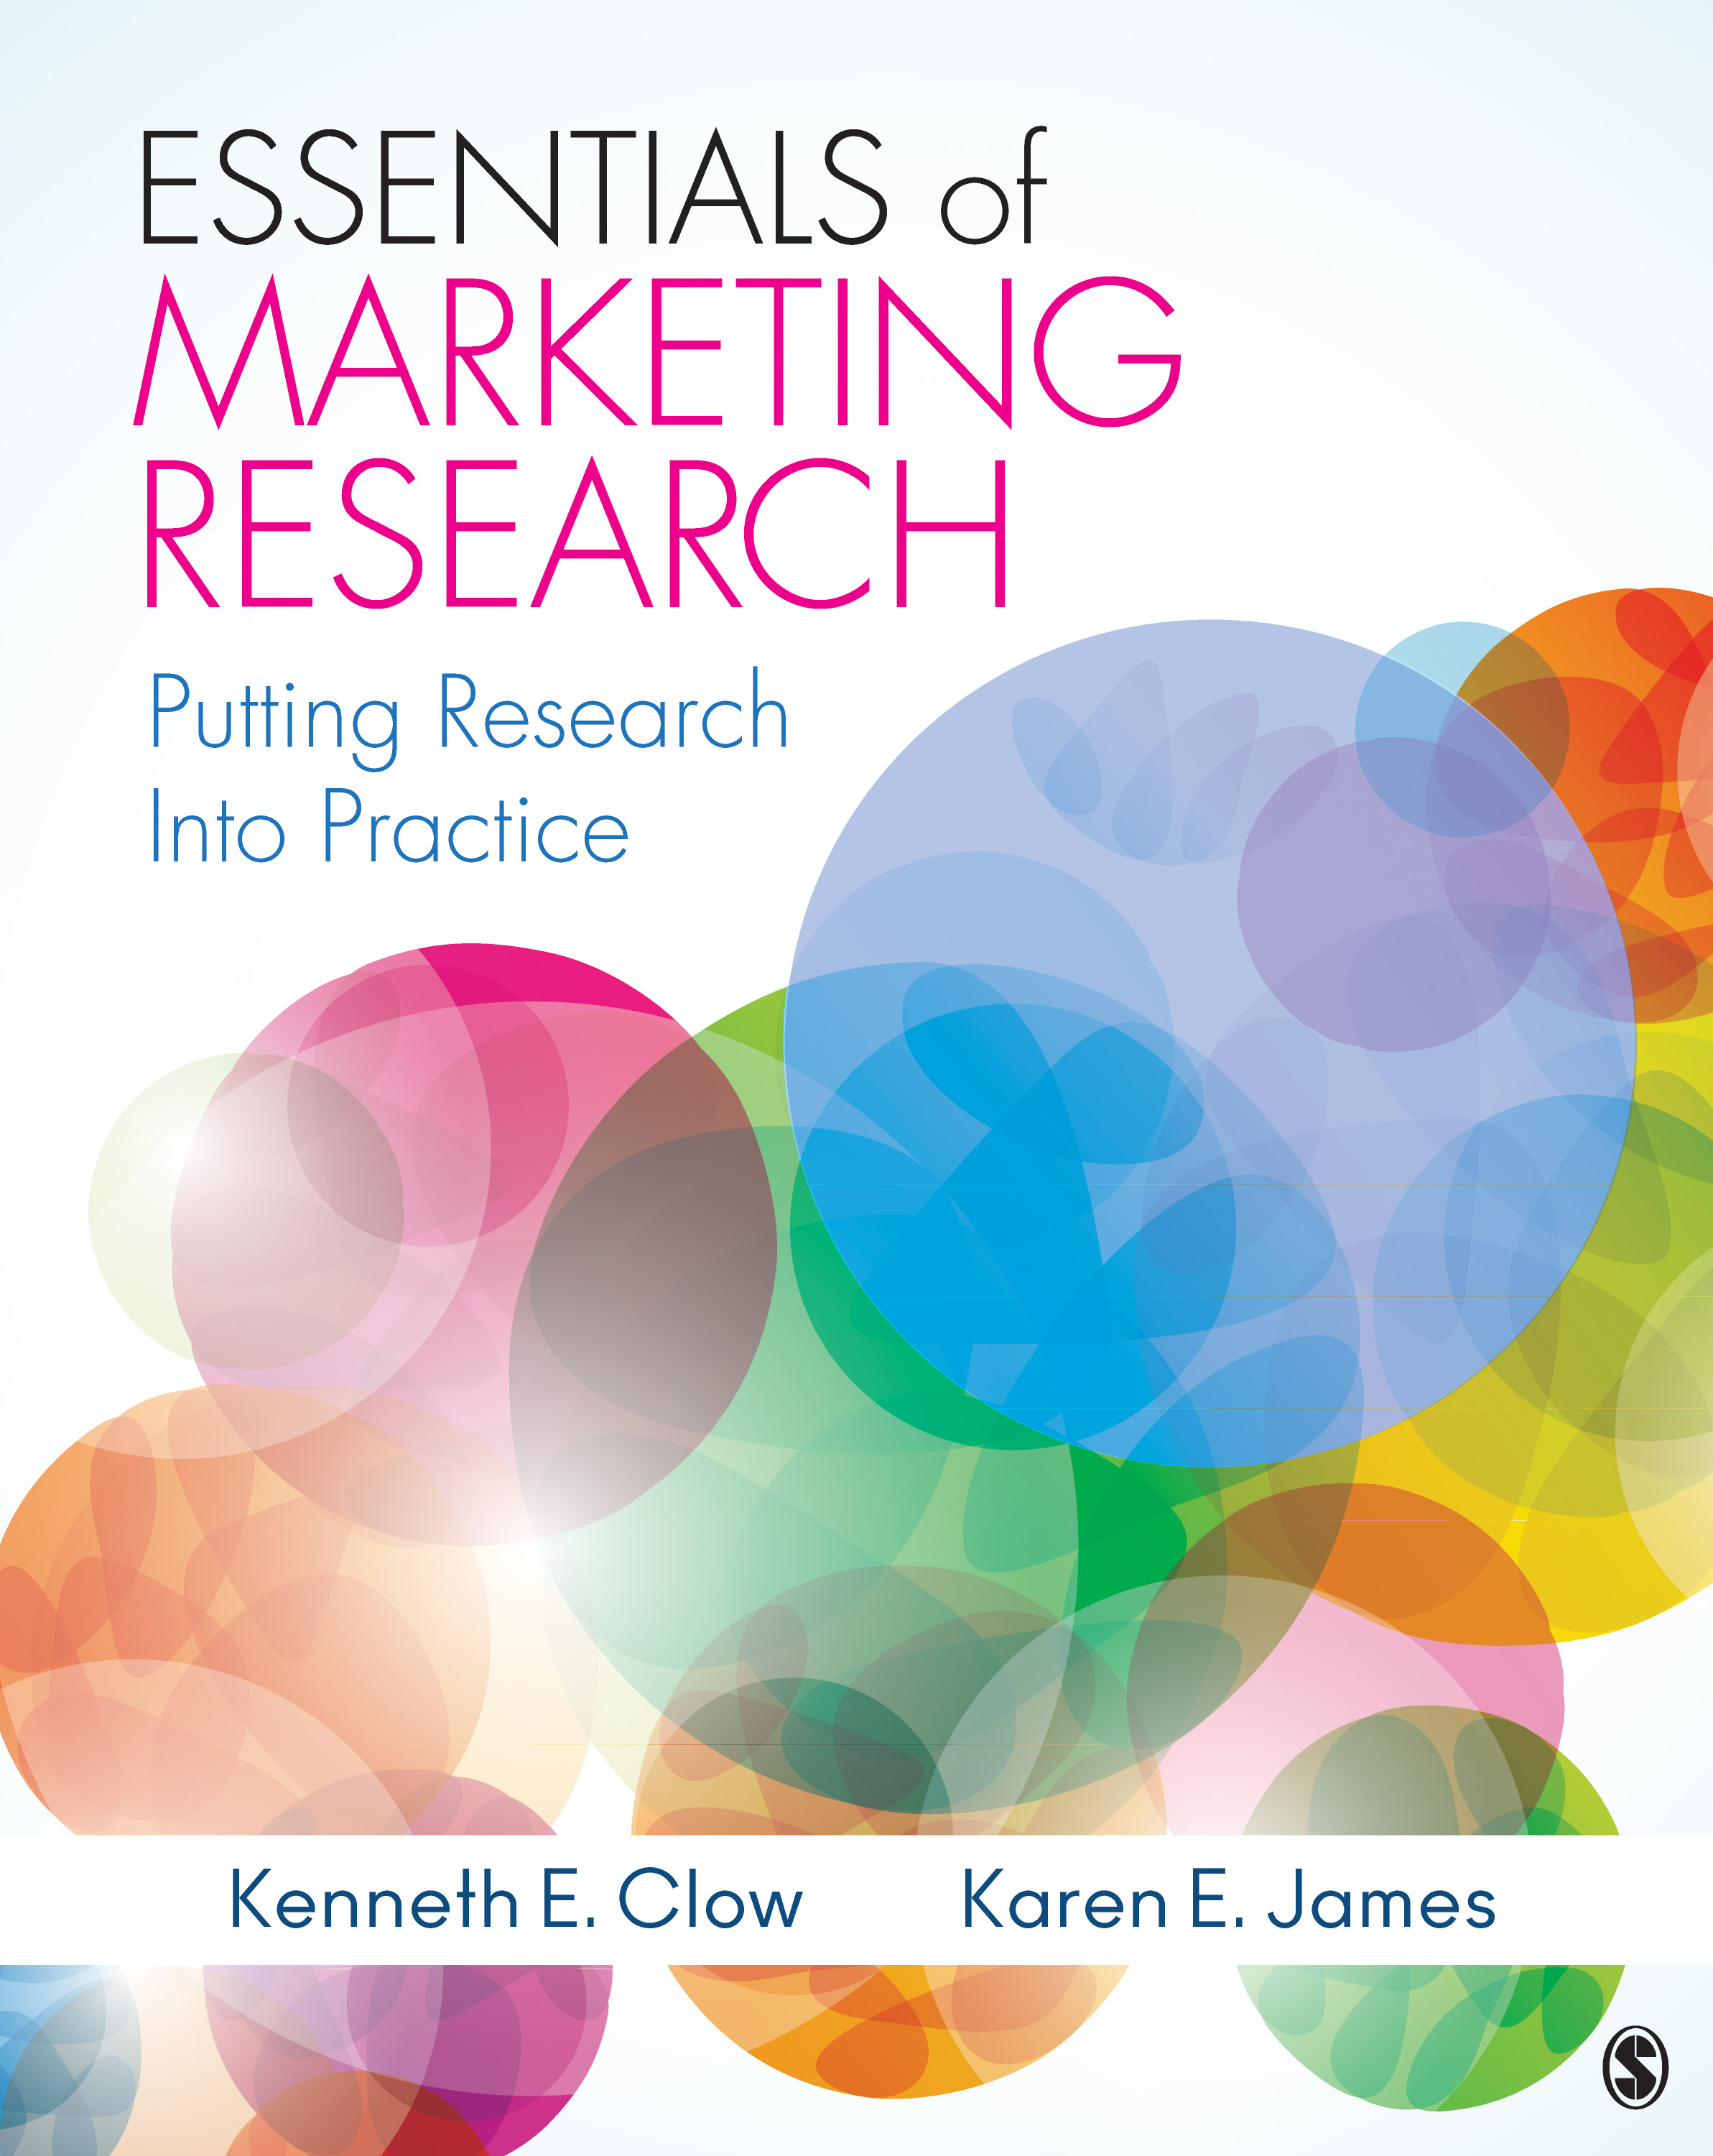 Download Ebook Essentials of Marketing Research by Kenneth E. Clow Pdf